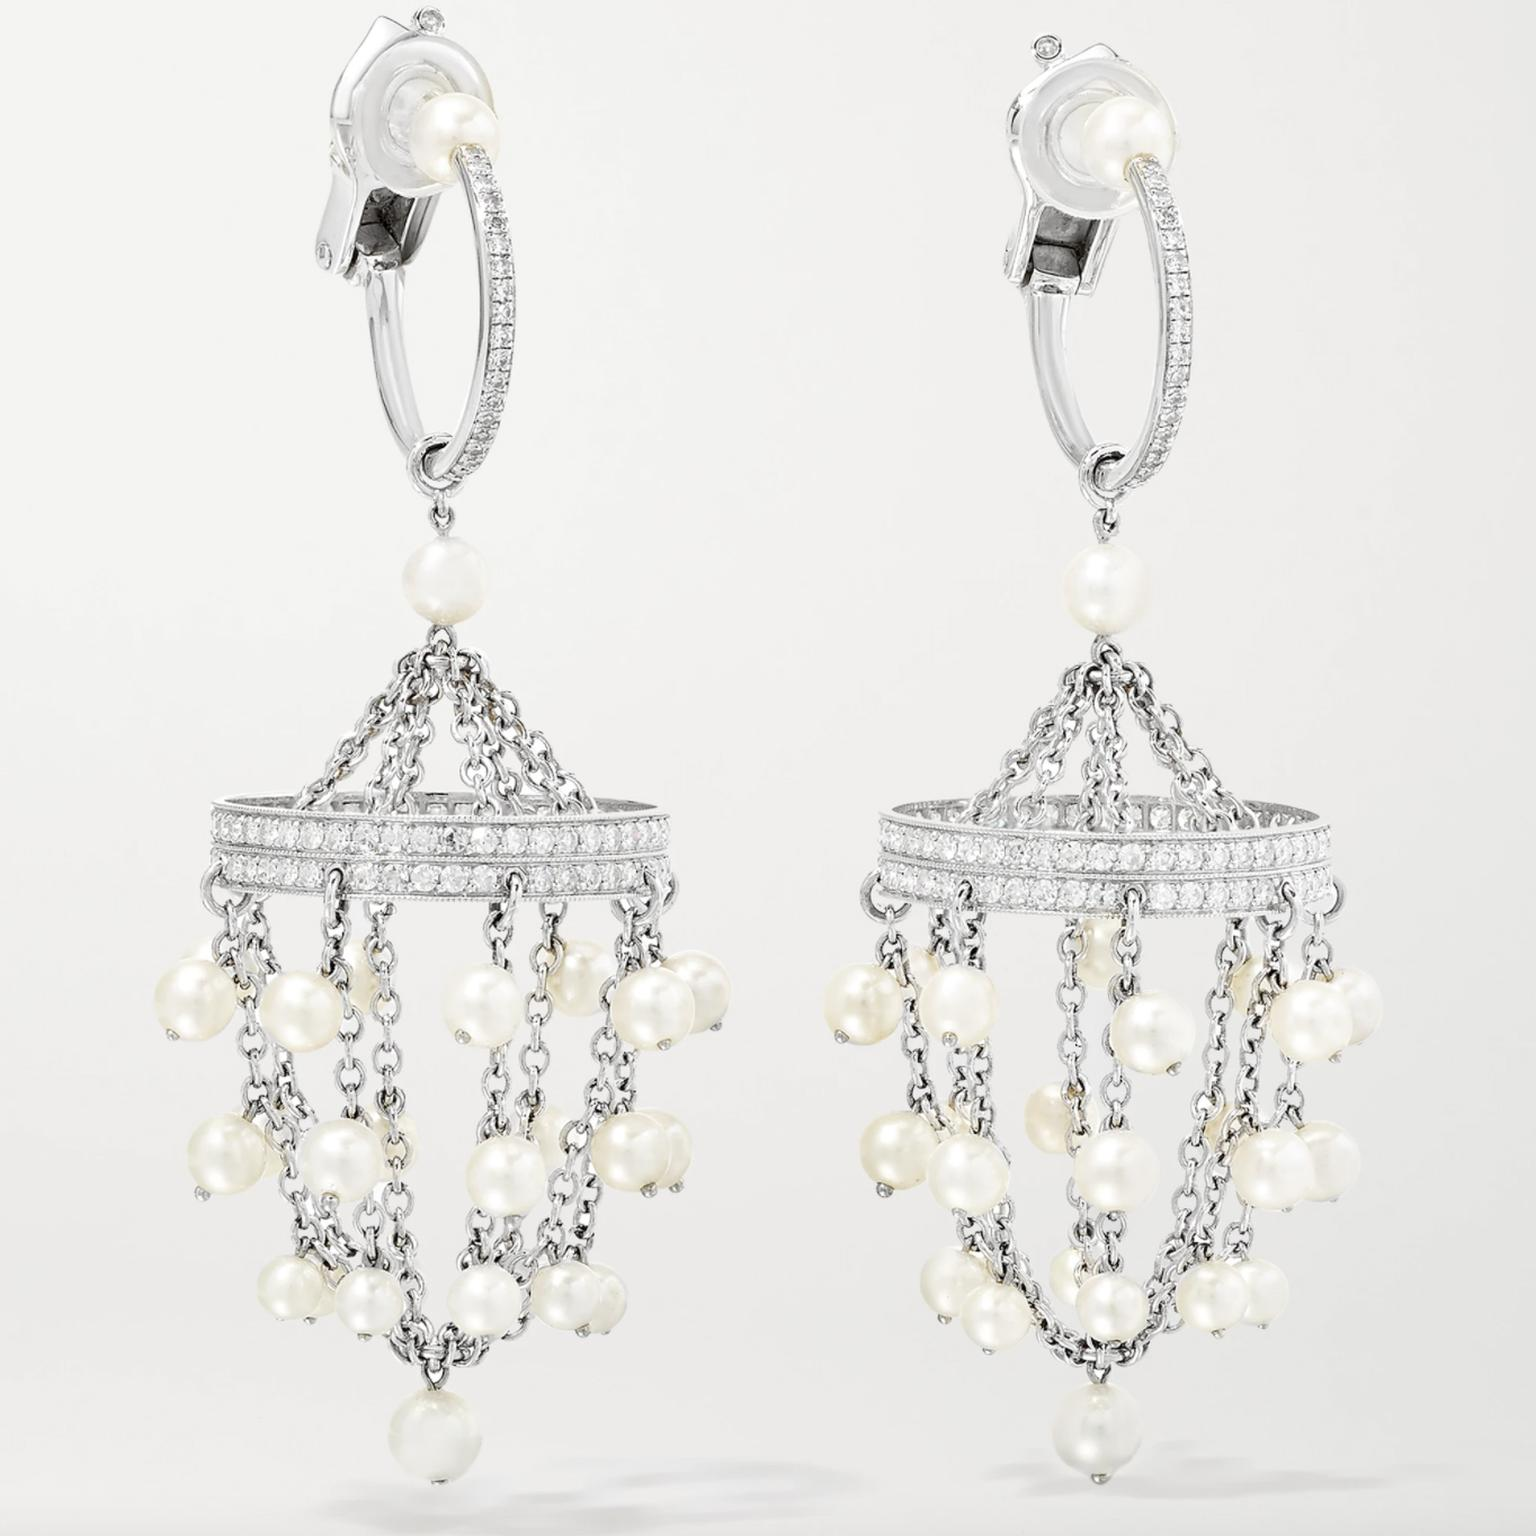 Click and dazzle: the most exciting high value earrings of the season